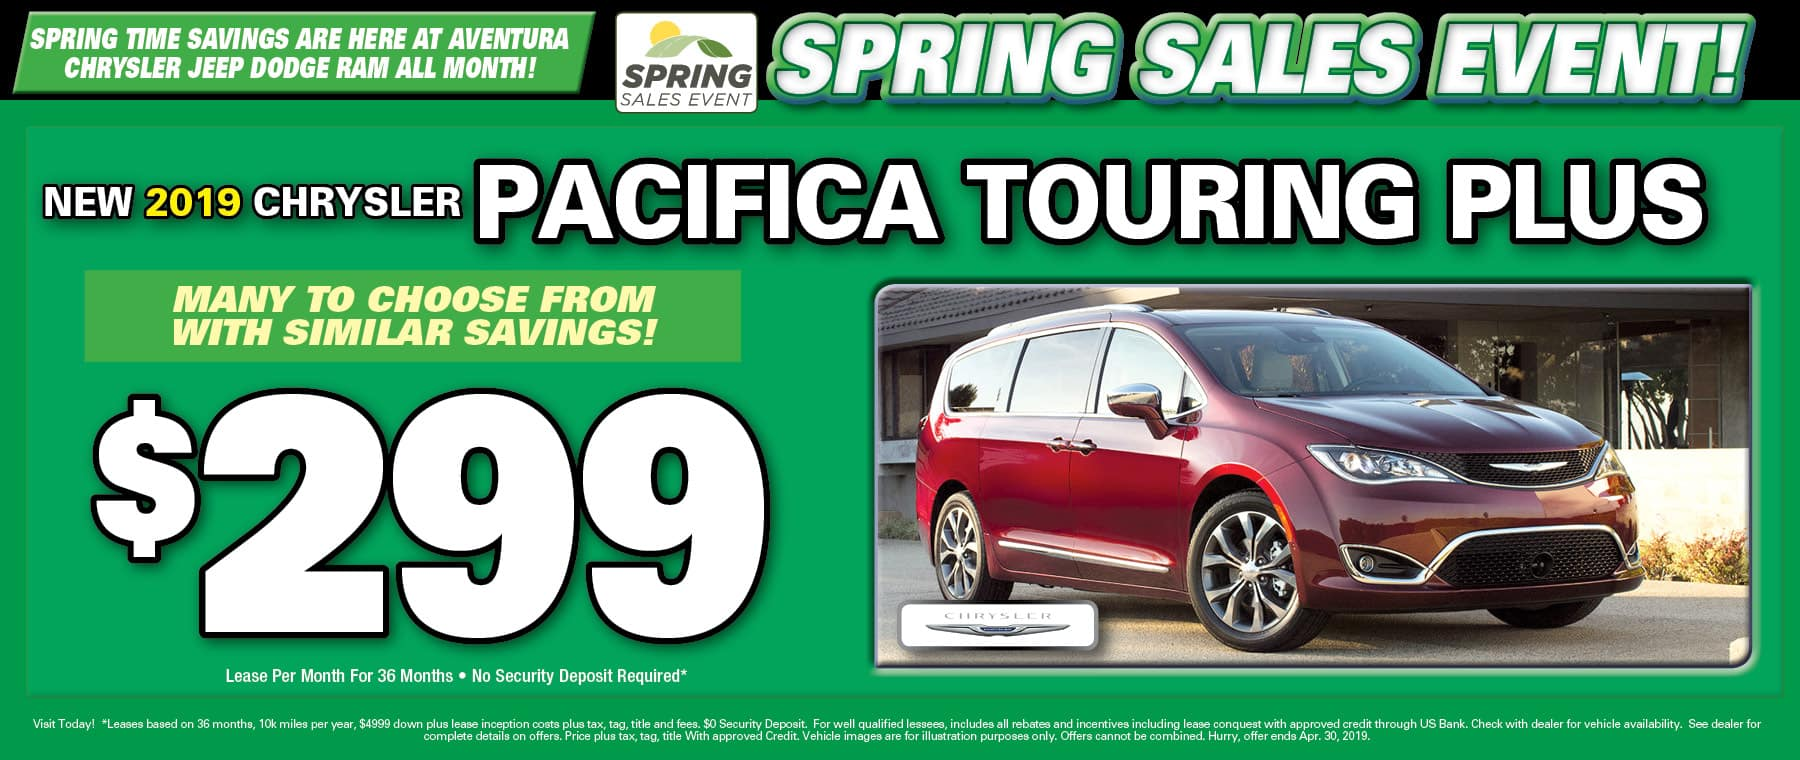 2019 Chrysler Pacifica Touring Plus!